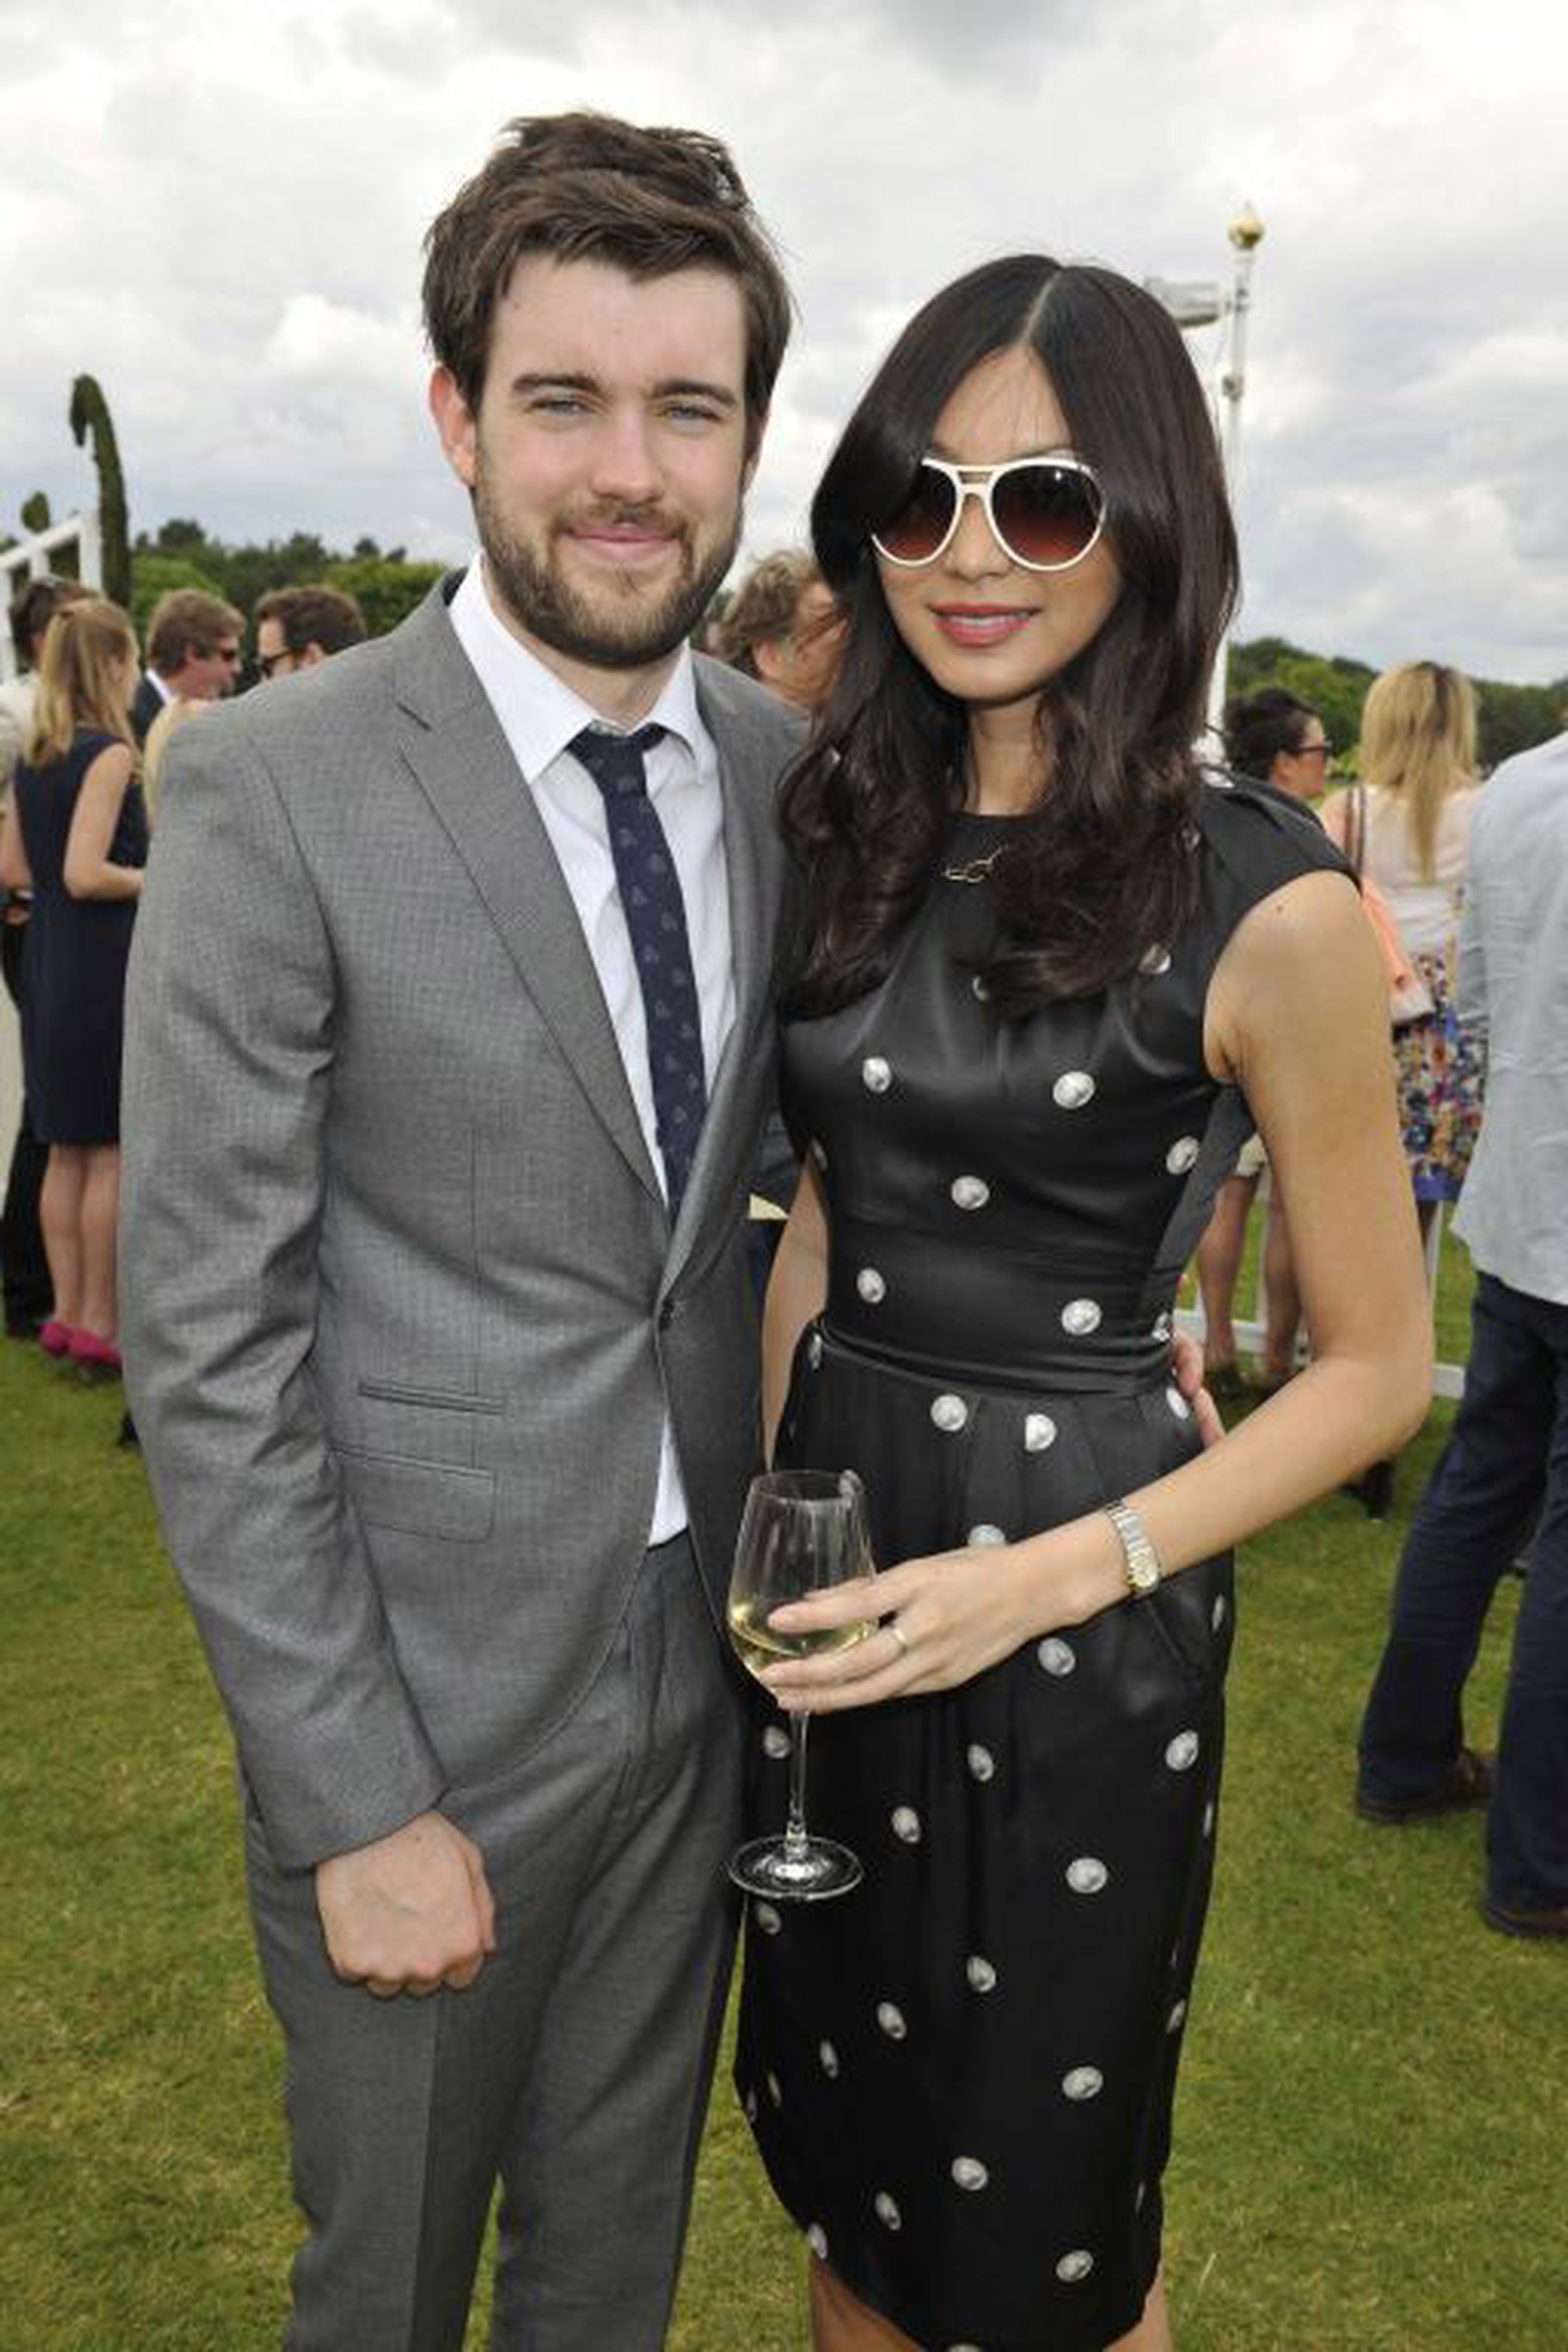 Cartier-Queens--Jack-Whitehall-Gemma-Chano.jpg